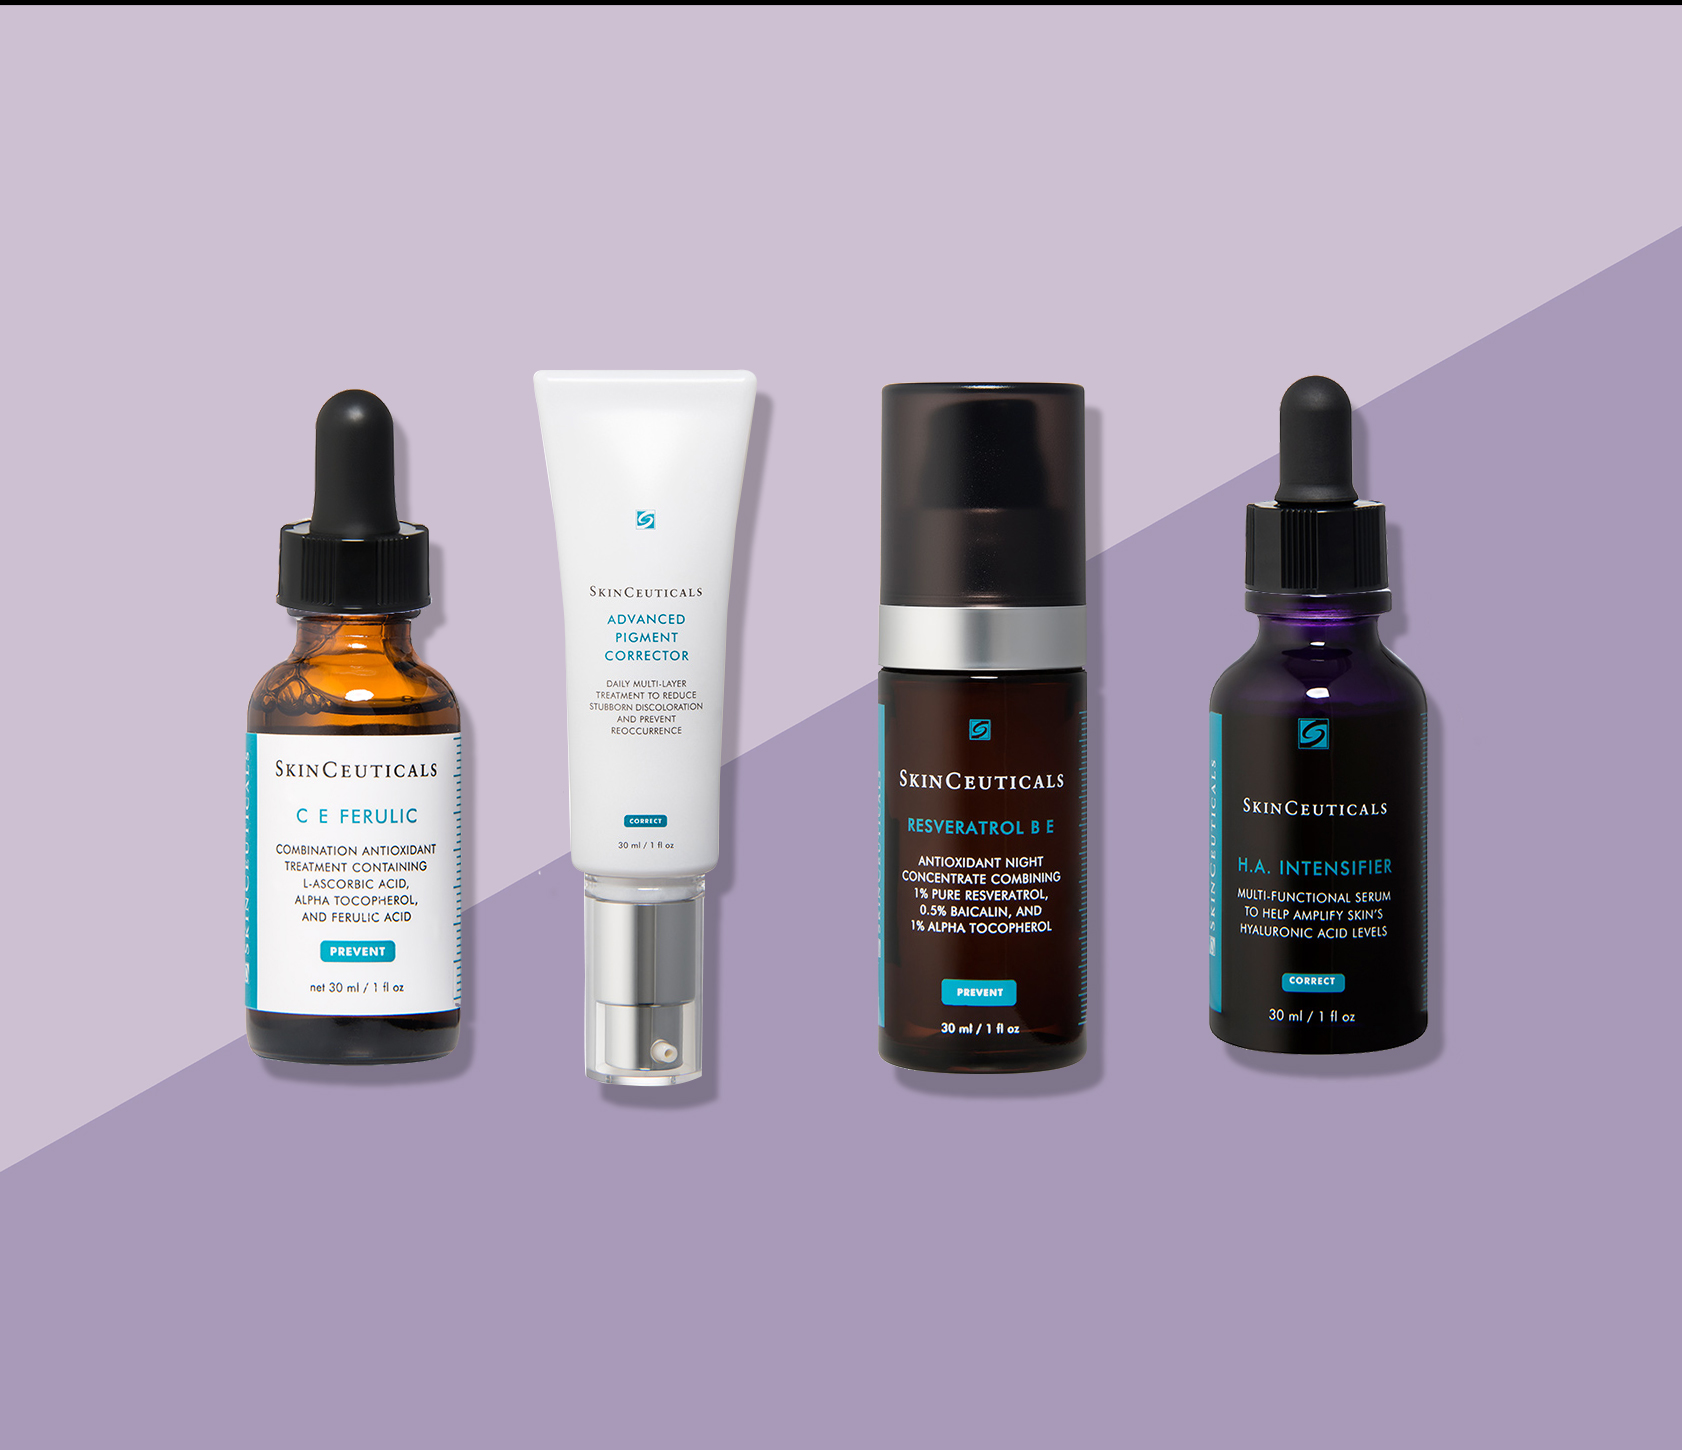 skinceuticals-sale-dermstore-products